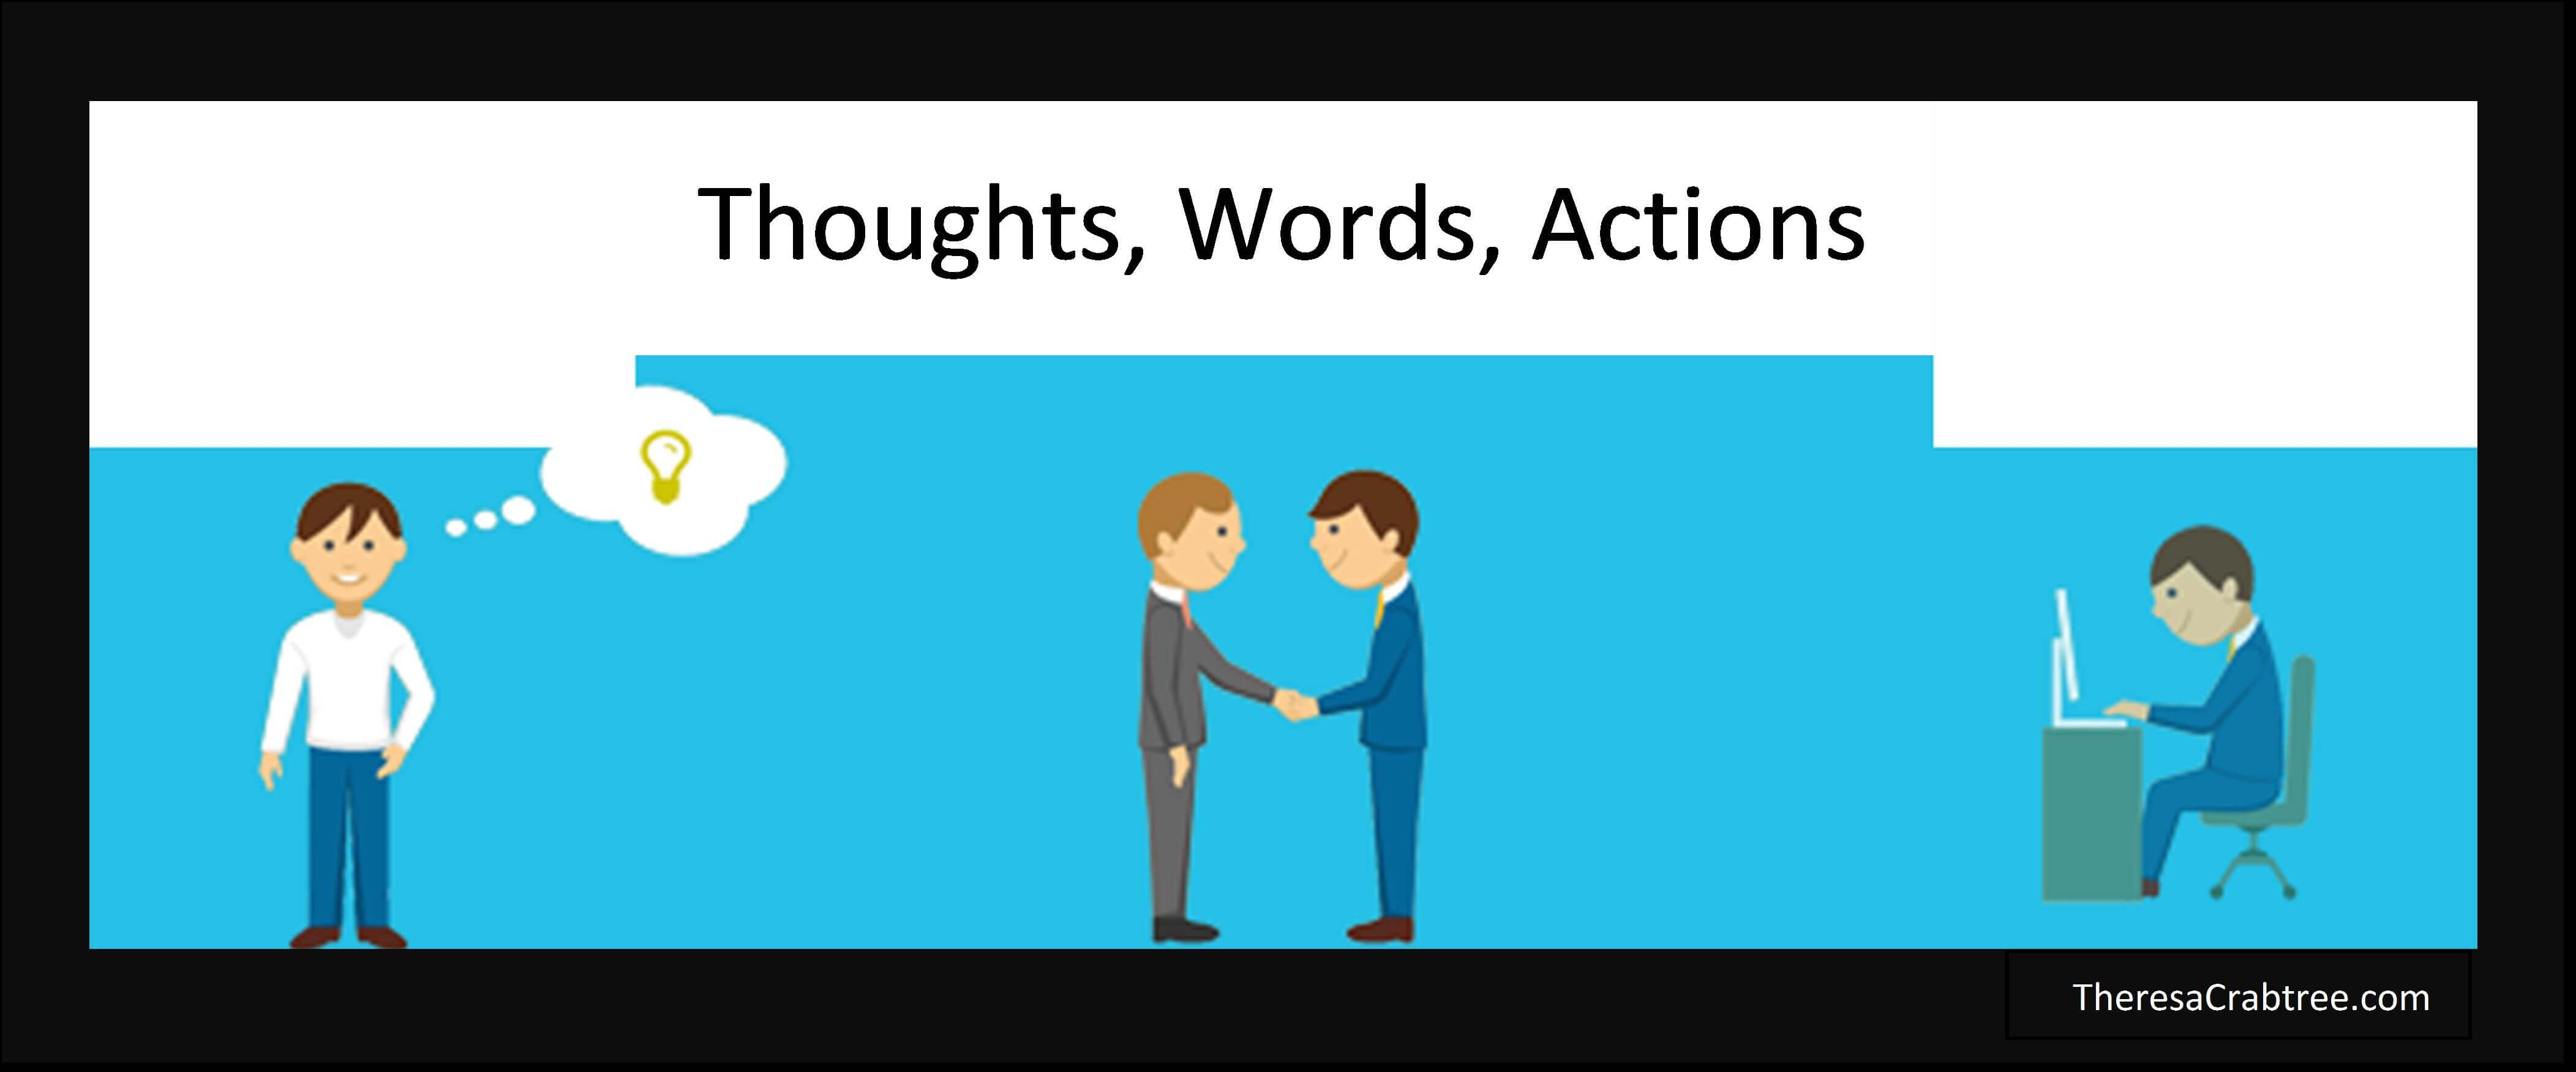 Thoughts, Words, Actions